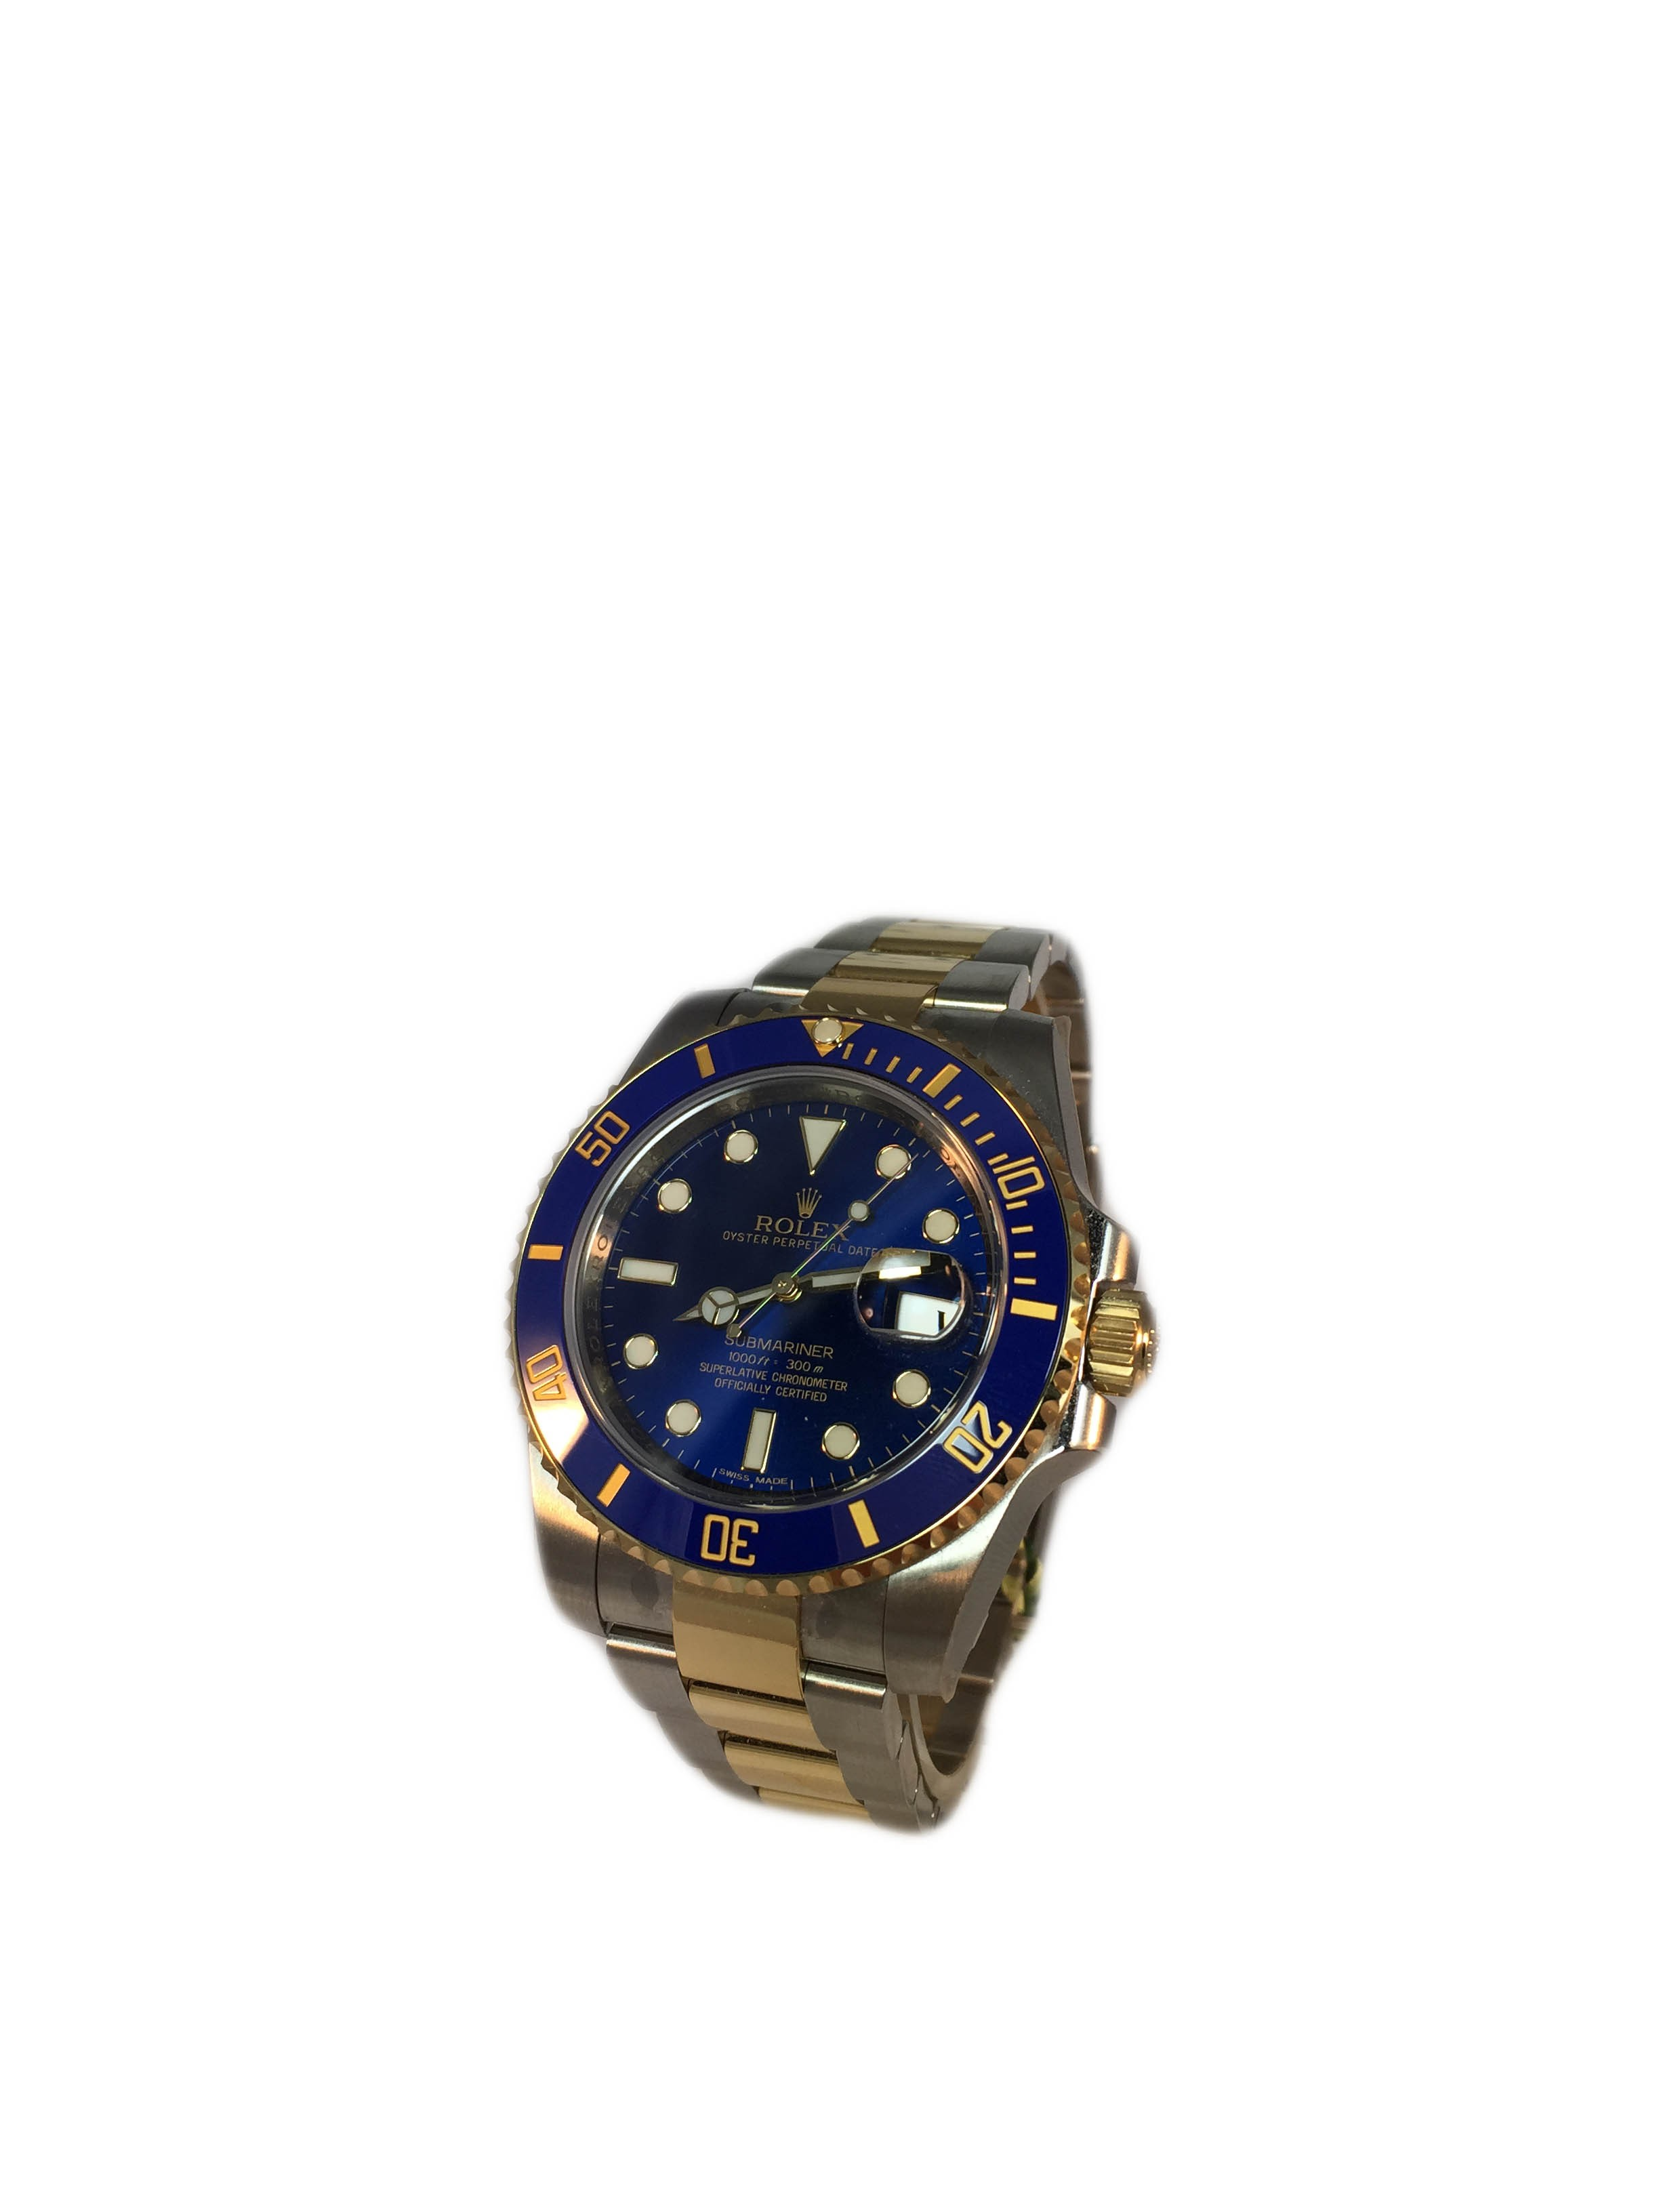 Rolex Submariner 116613blue